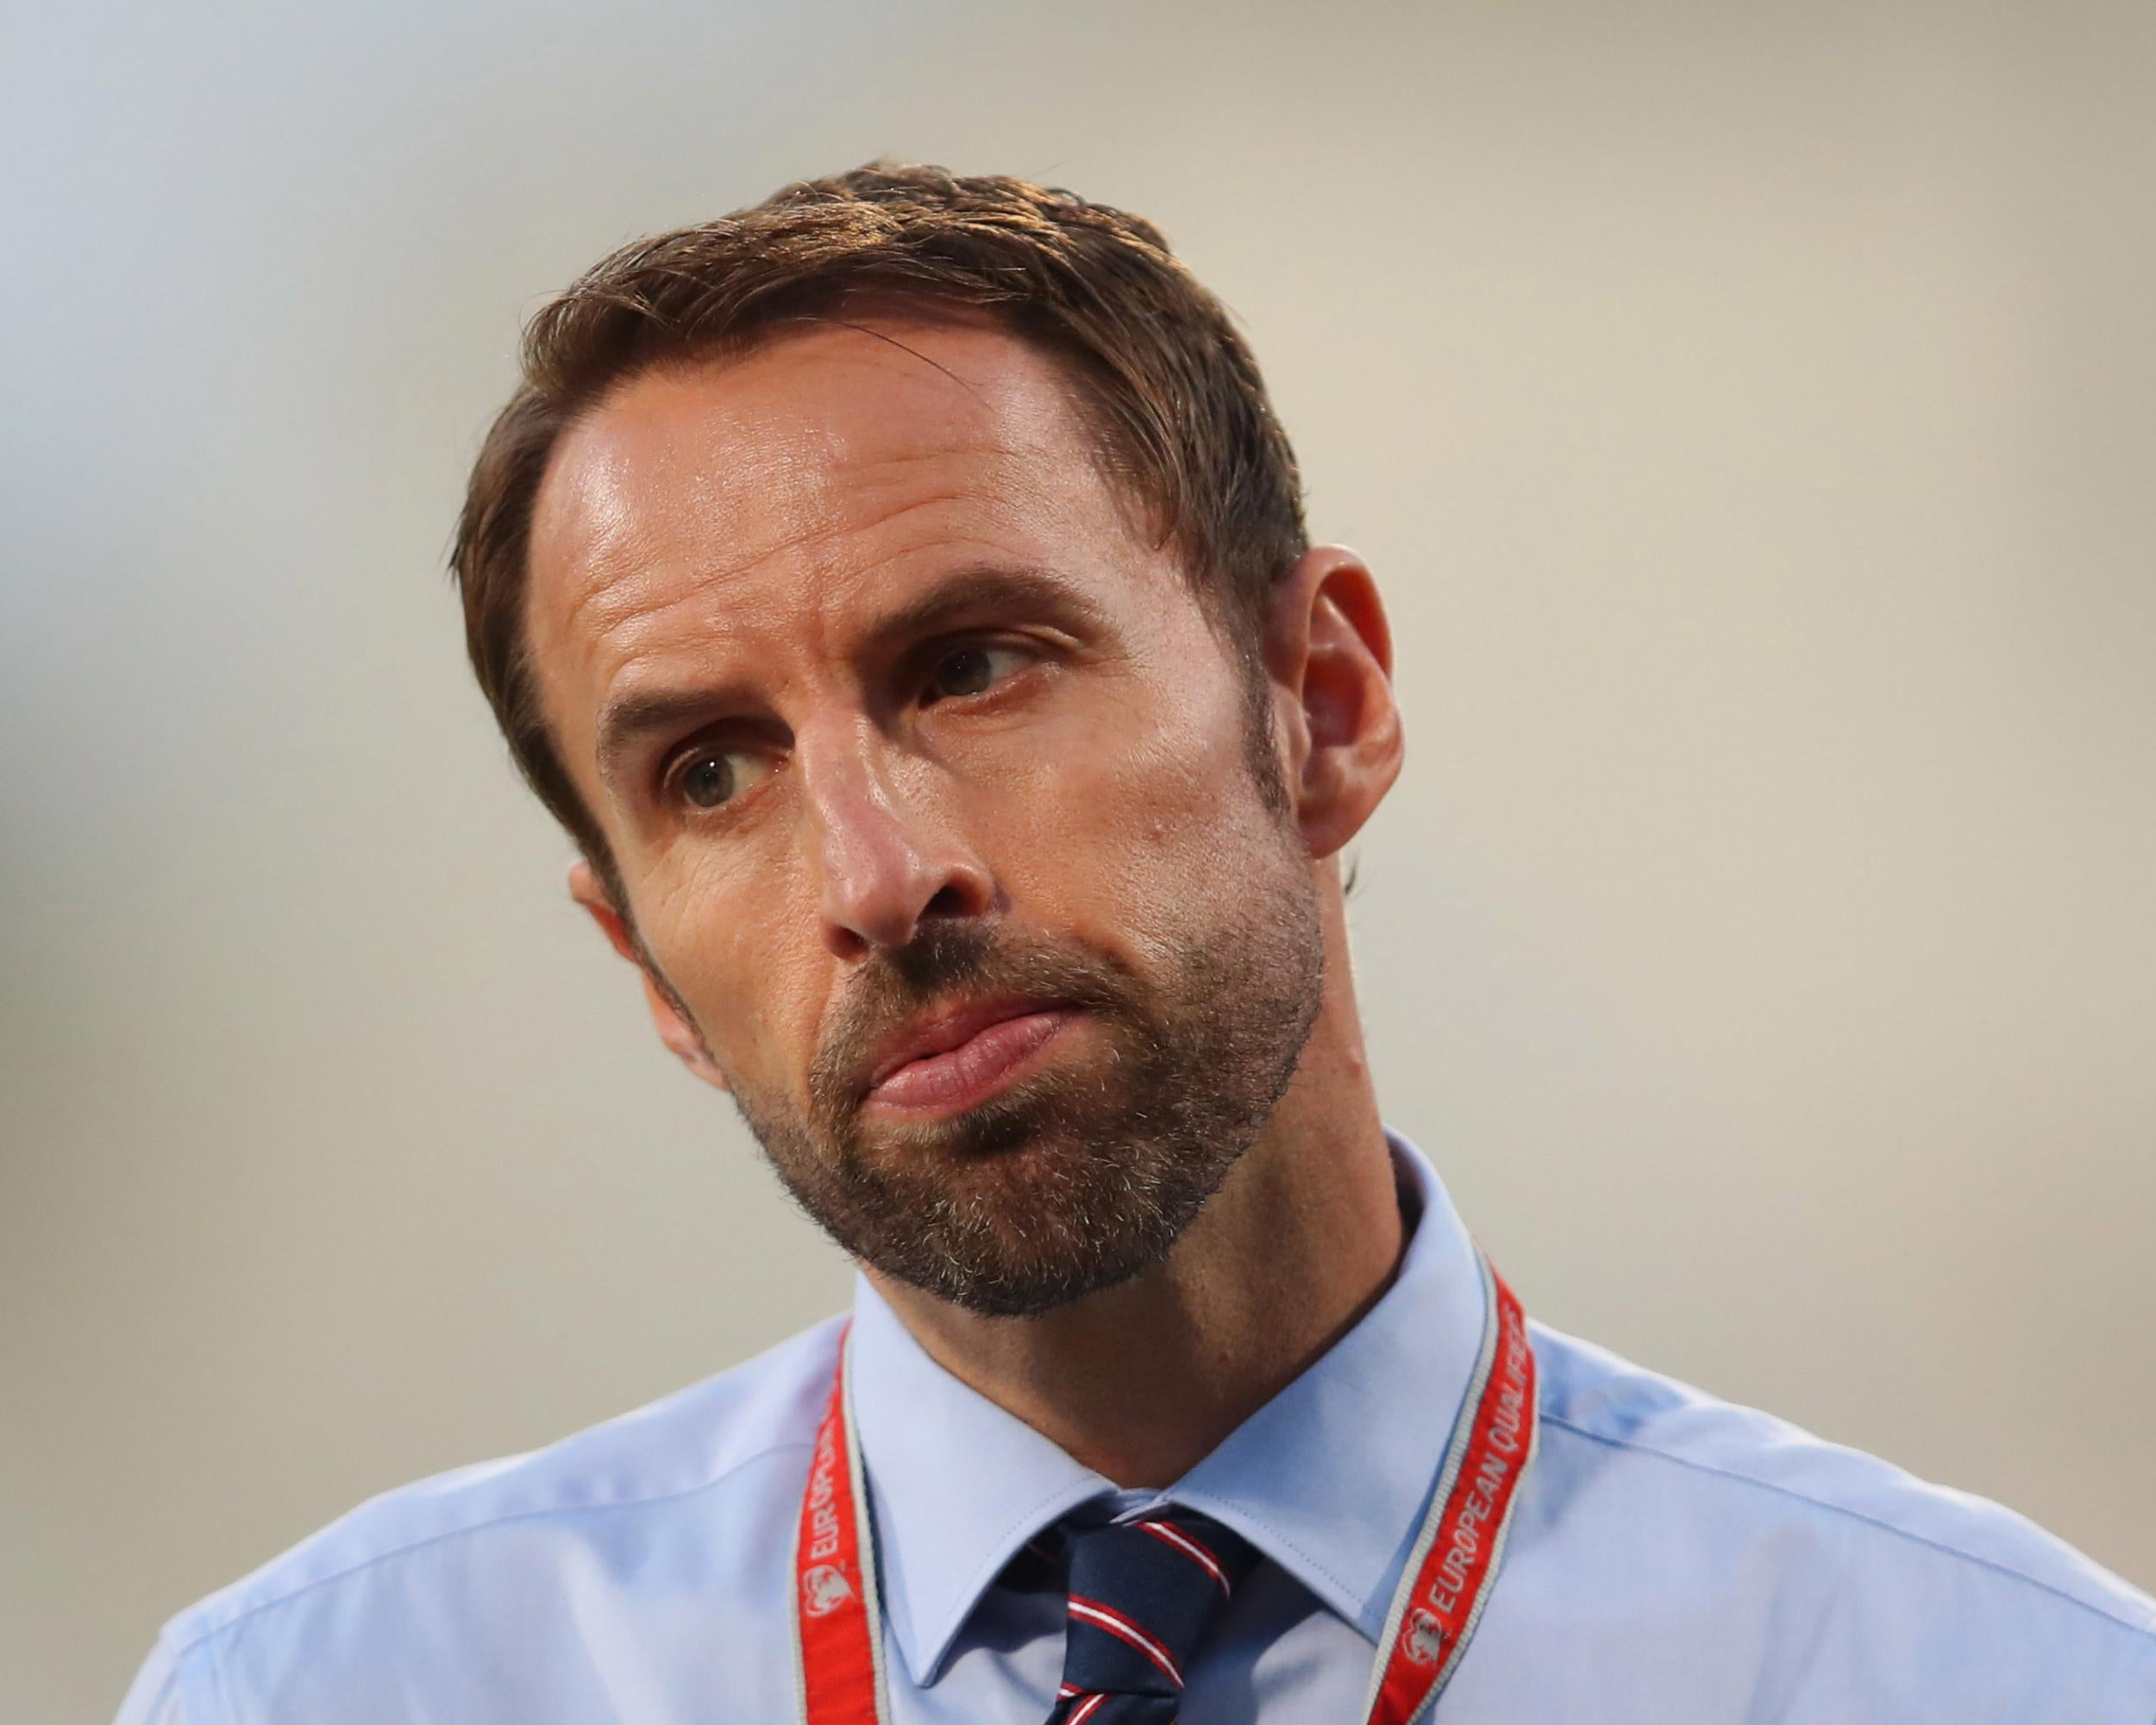 The FA fear England stars could be hacked during World Cup 2018 in Russia